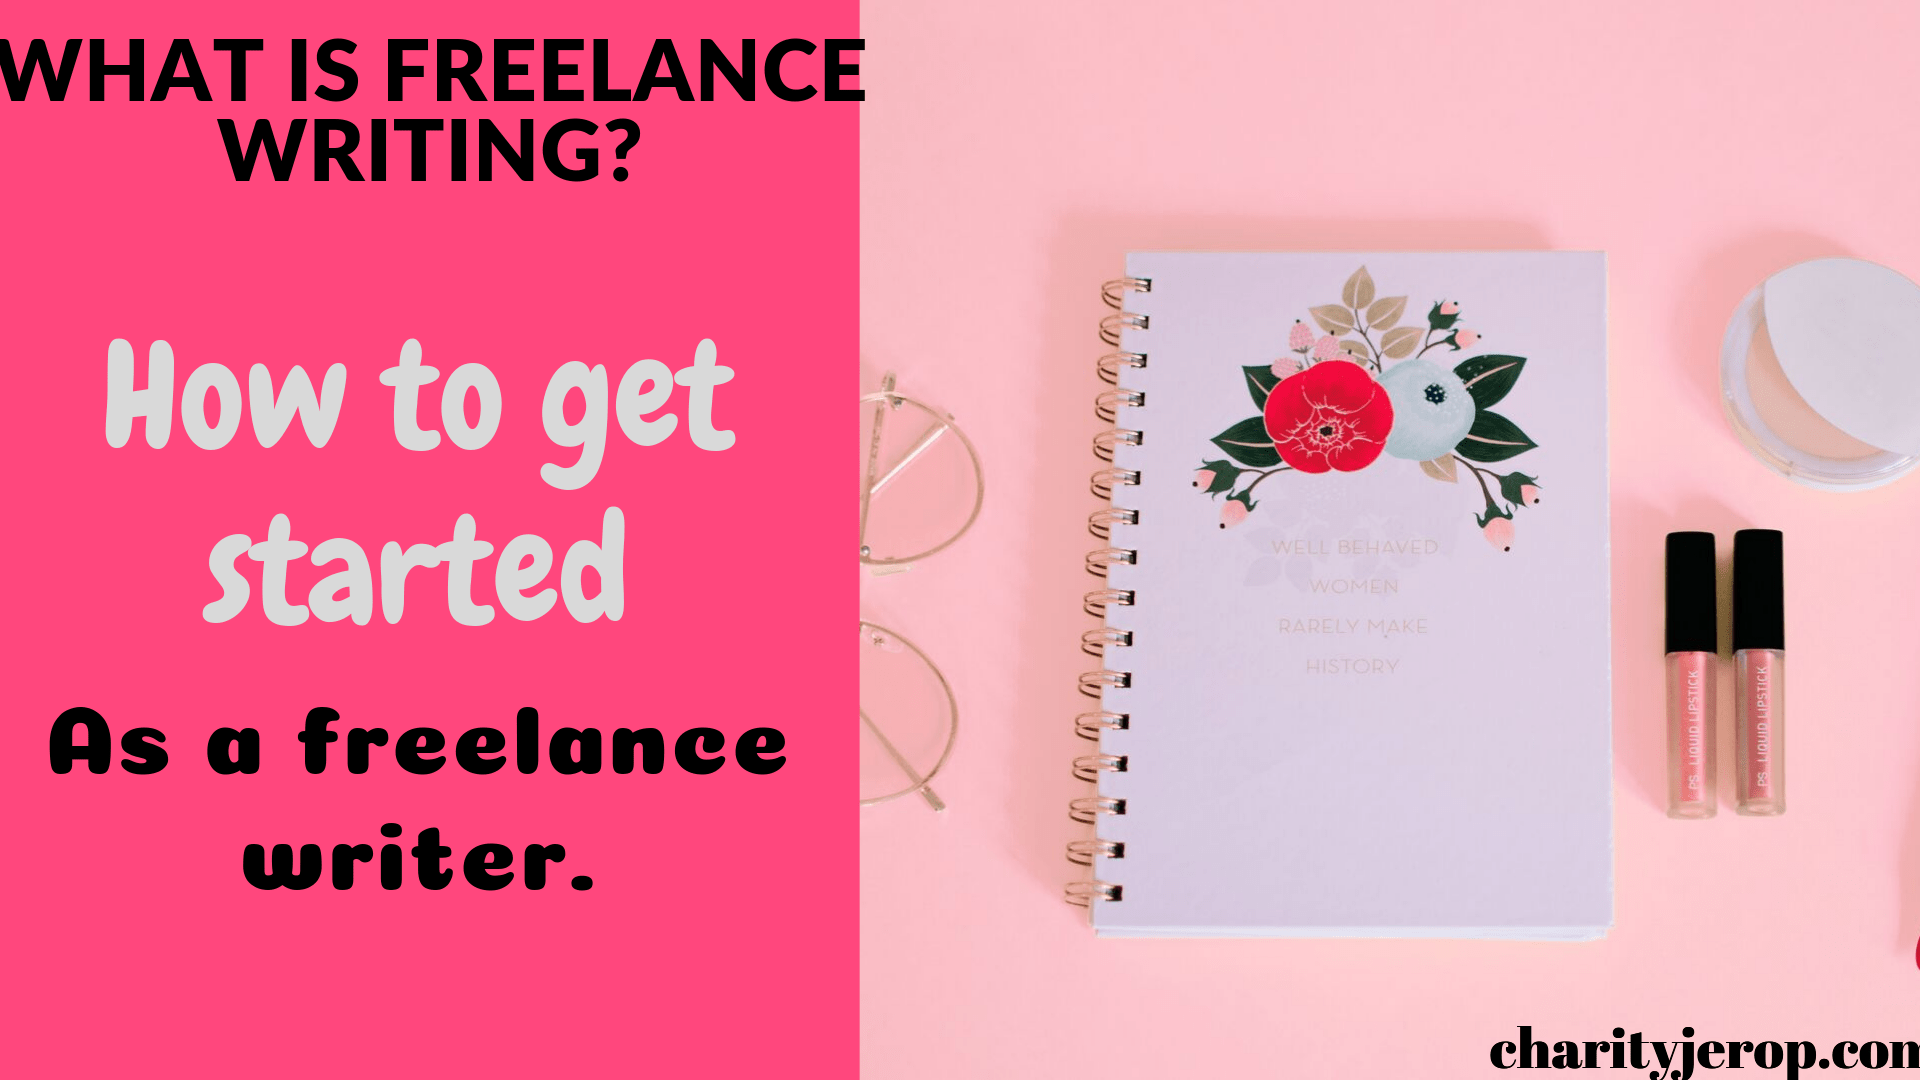 What is freelance writing and how do I get started as a freelance writer.